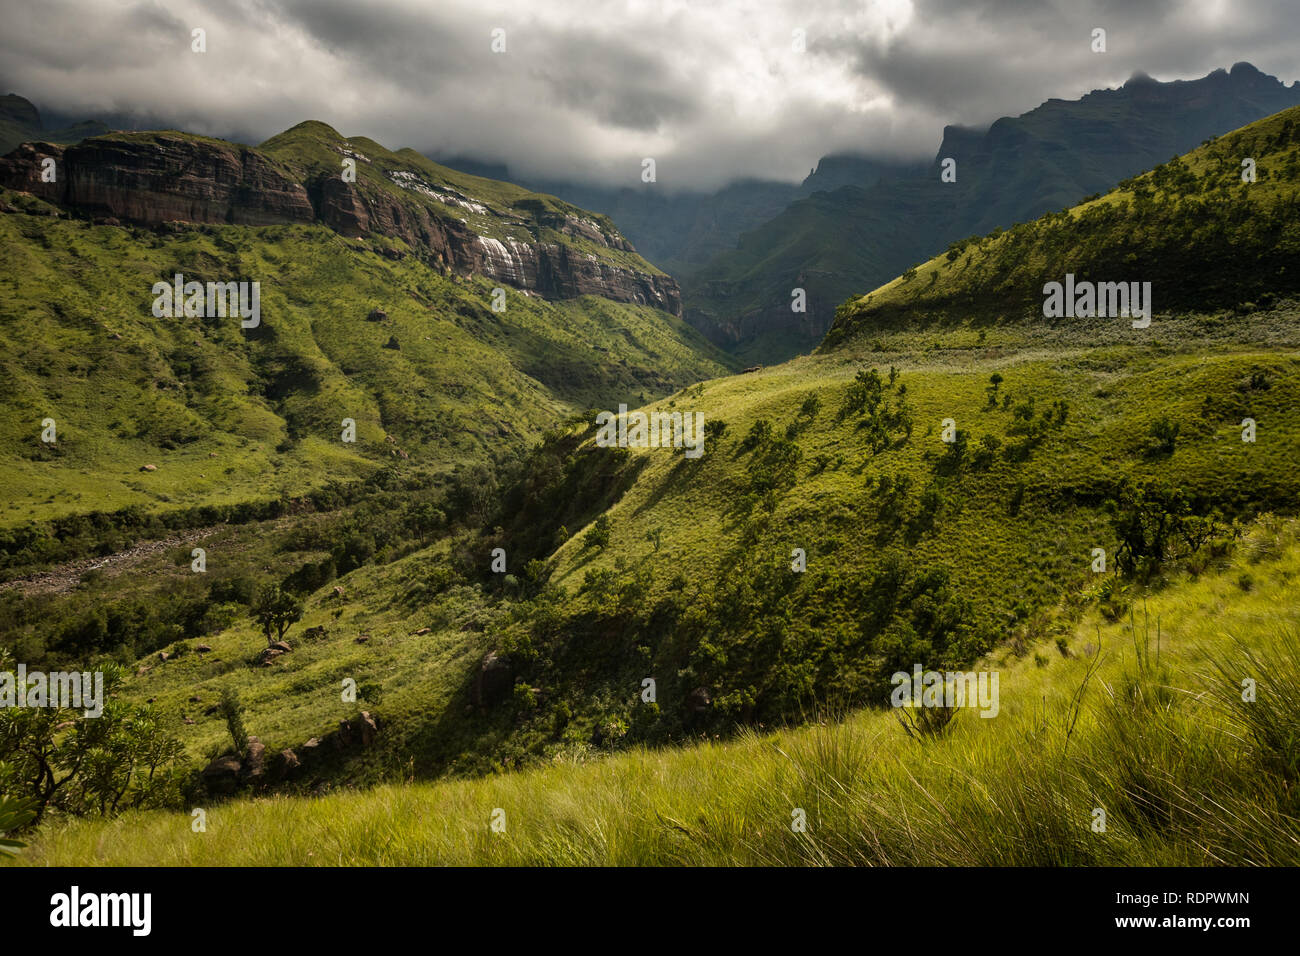 Mountain views on the Thukela hike to the bottom of the Amphitheatre's Tugela Falls in the Royal Natal National Park, Drakensberg, South Africa Stock Photo